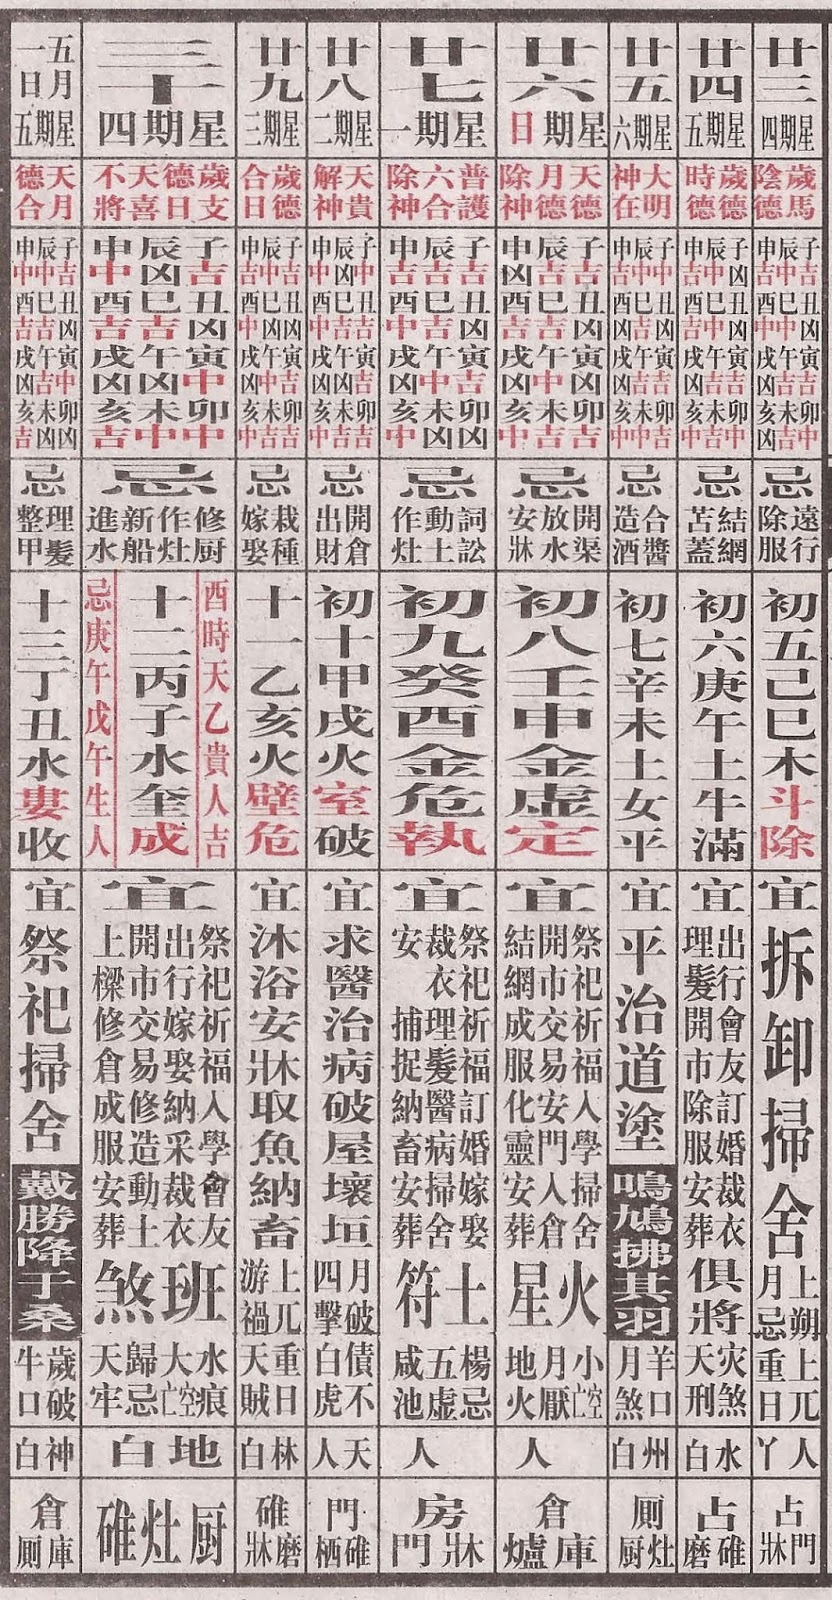 Round And Square: China's Lunar Calendar 2015 0430 with What Is The Lunar Calendar Date Today